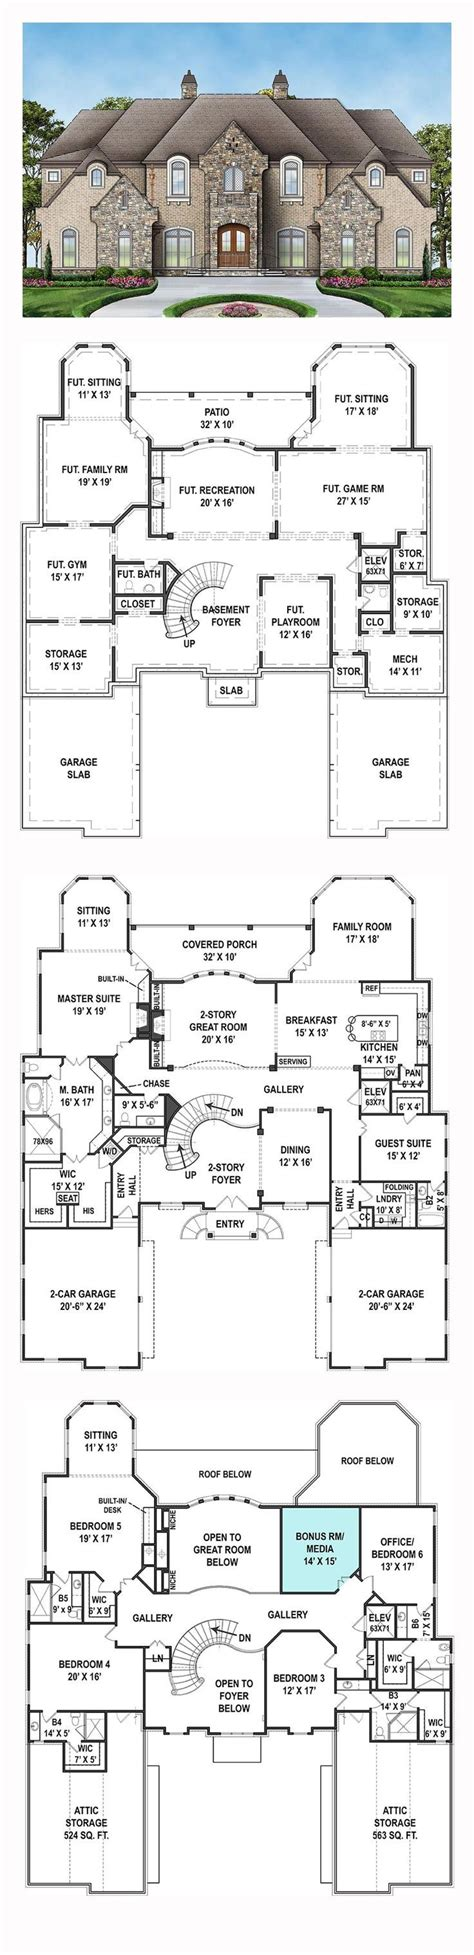 6 bedroom house plans luxury best 25 new house plans ideas on house plans